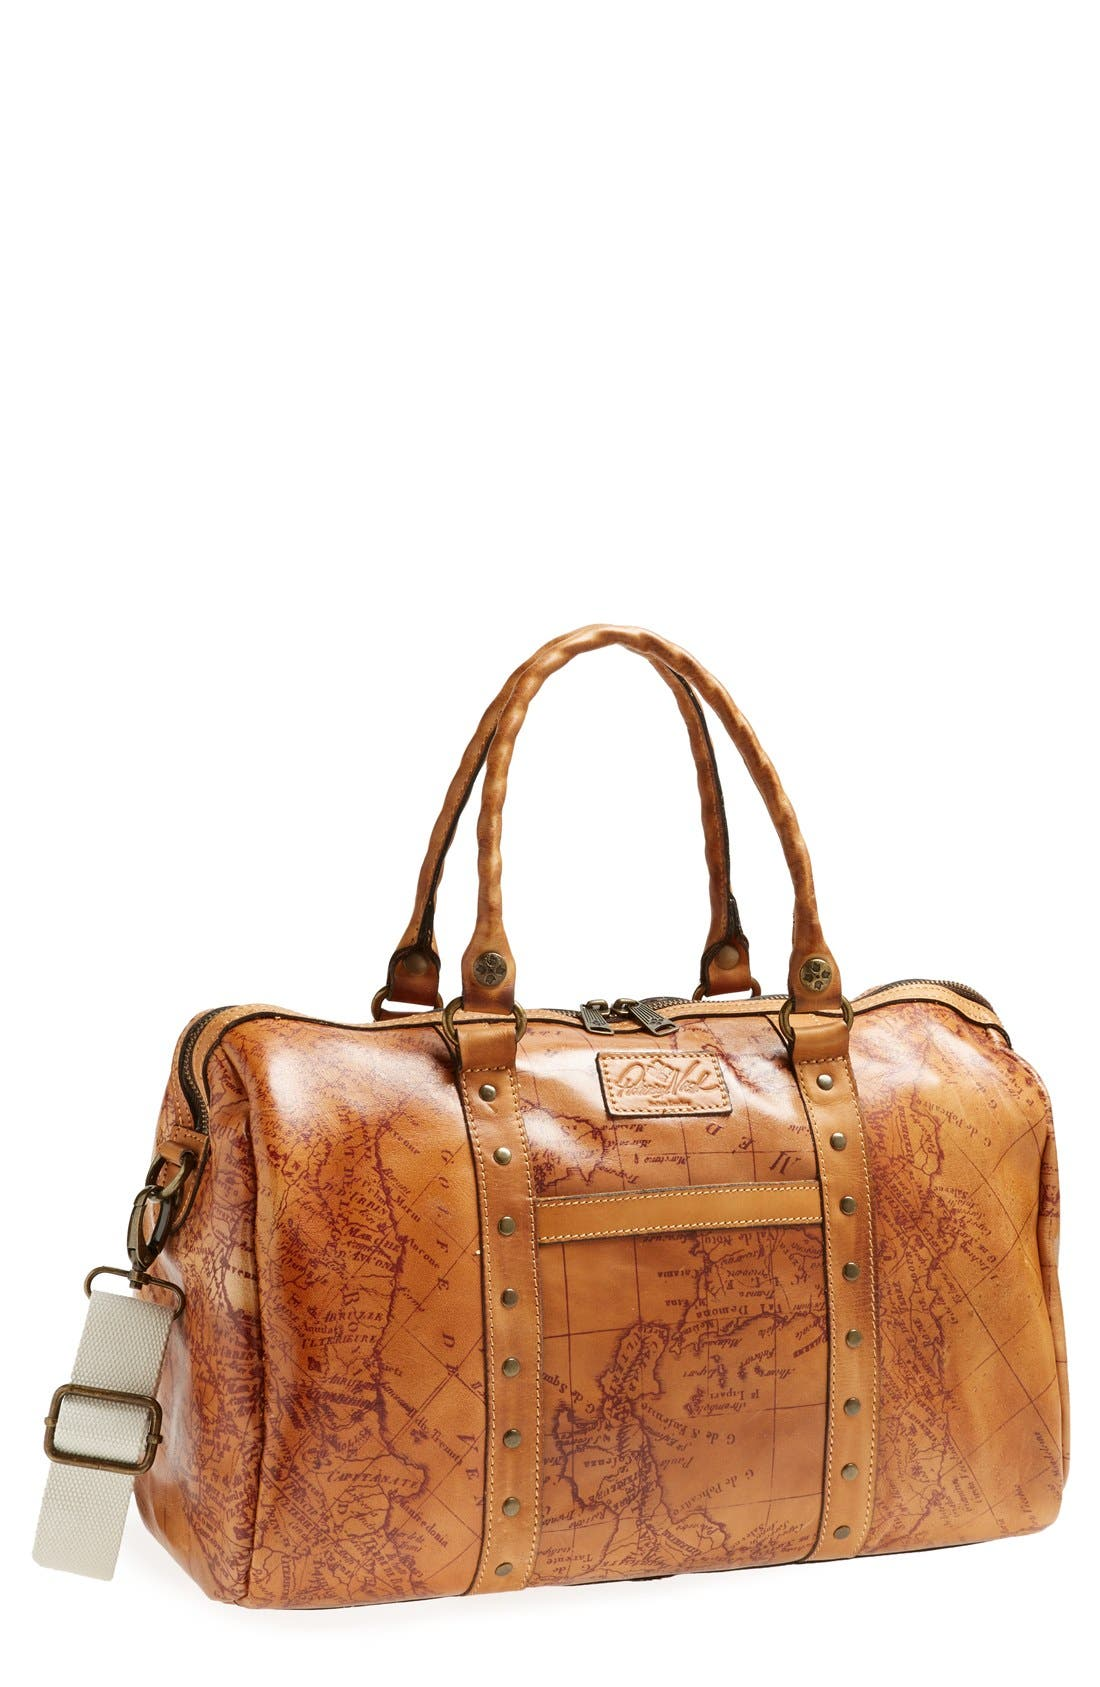 Alternate Image 1 Selected - Patricia Nash 'Stressa' Leather Overnight Bag (16 Inch)